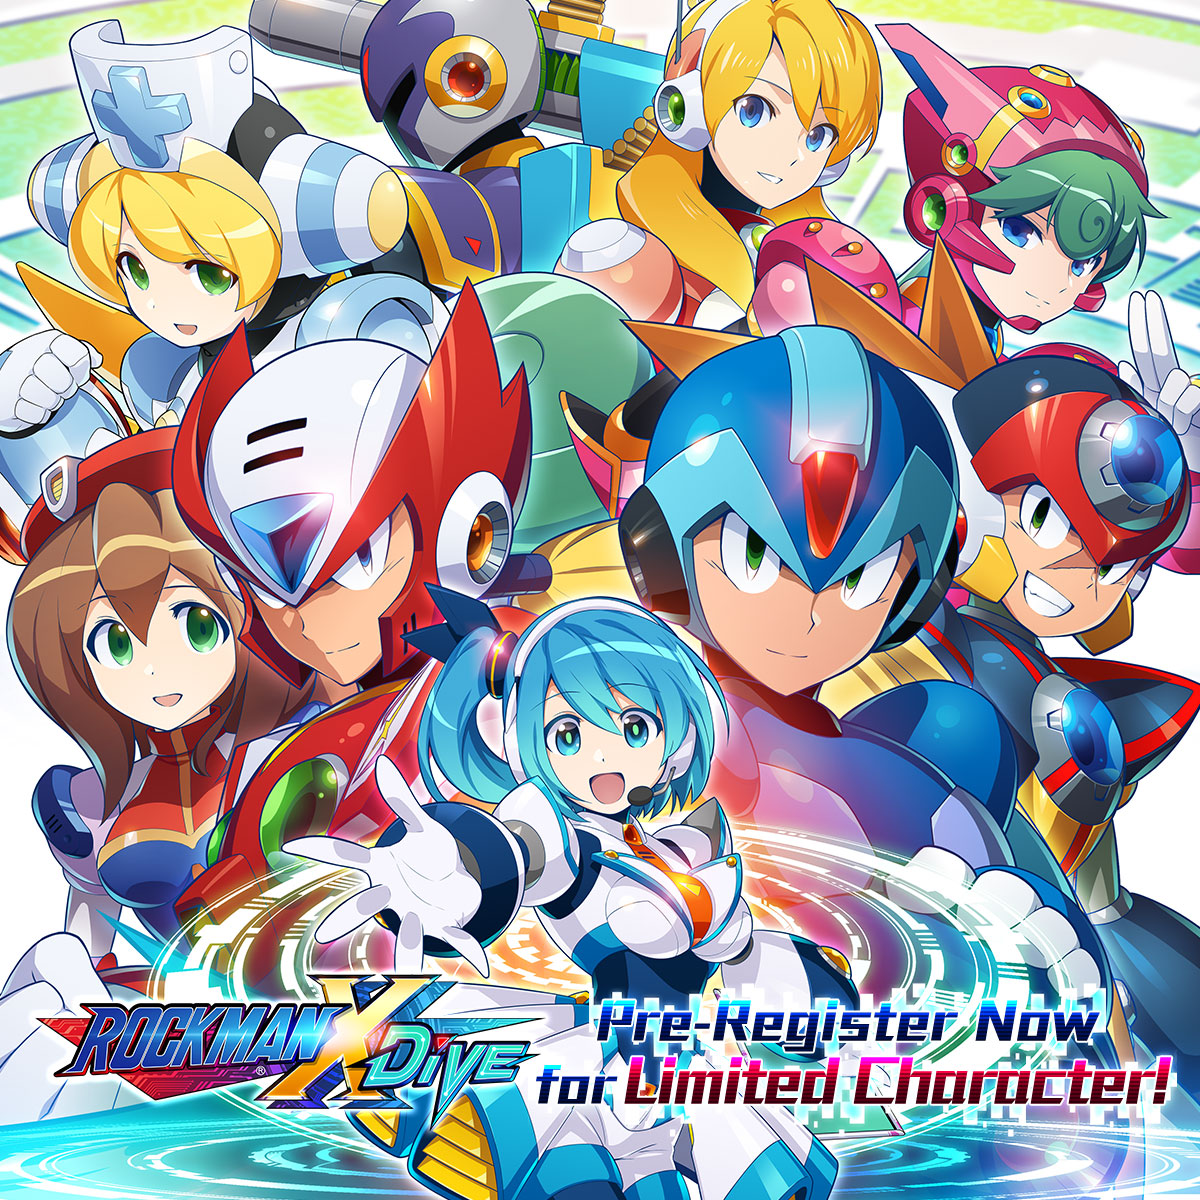 Pre-Register Event Starts  Pre-Register: Website: It's available in the following regions: Taiwan, Hong Kong, Macau, Singapore, Malaysia, Philippines, Indonesia, Thailand, Cambodia #MegaManXDiVE #RockmanXDiVE #ロックマンXDiVE